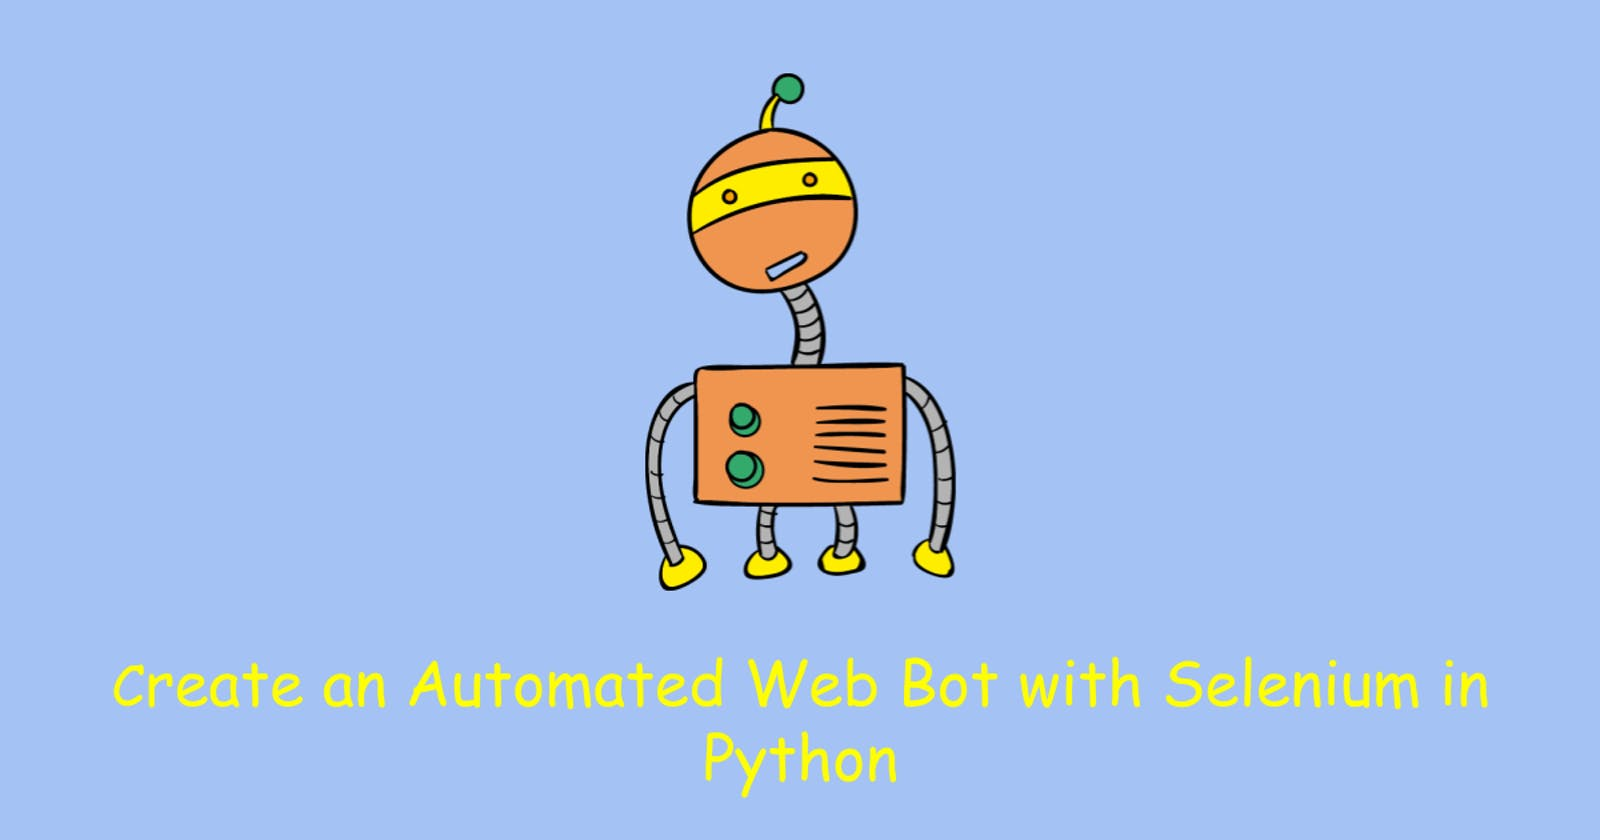 Create an Automated Web Bot with Selenium in Python